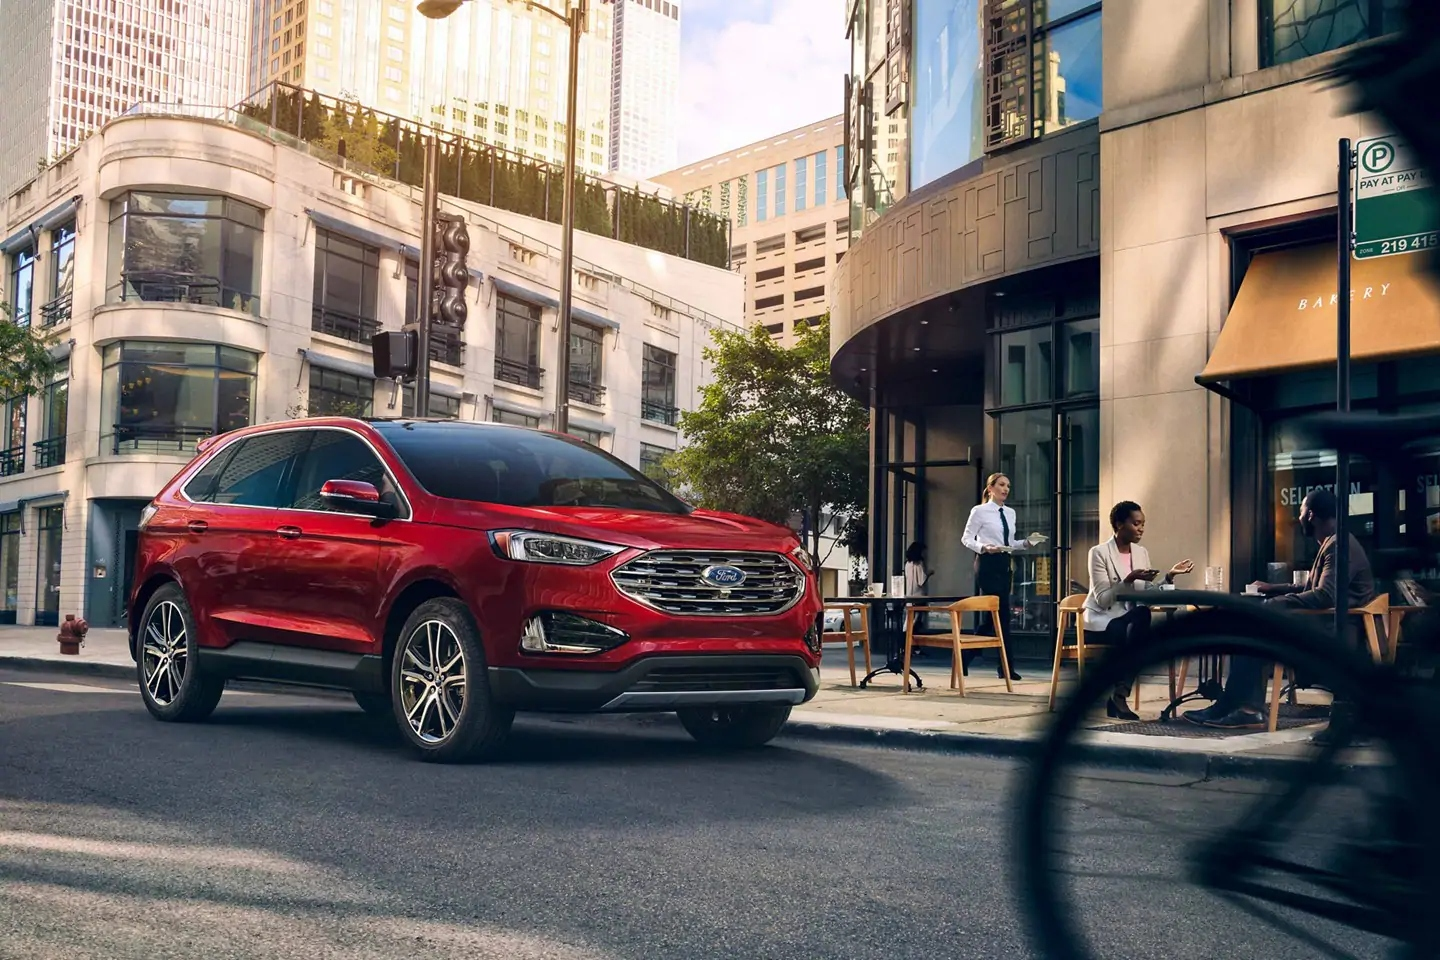 New Ford Edge in Leesburg, VA